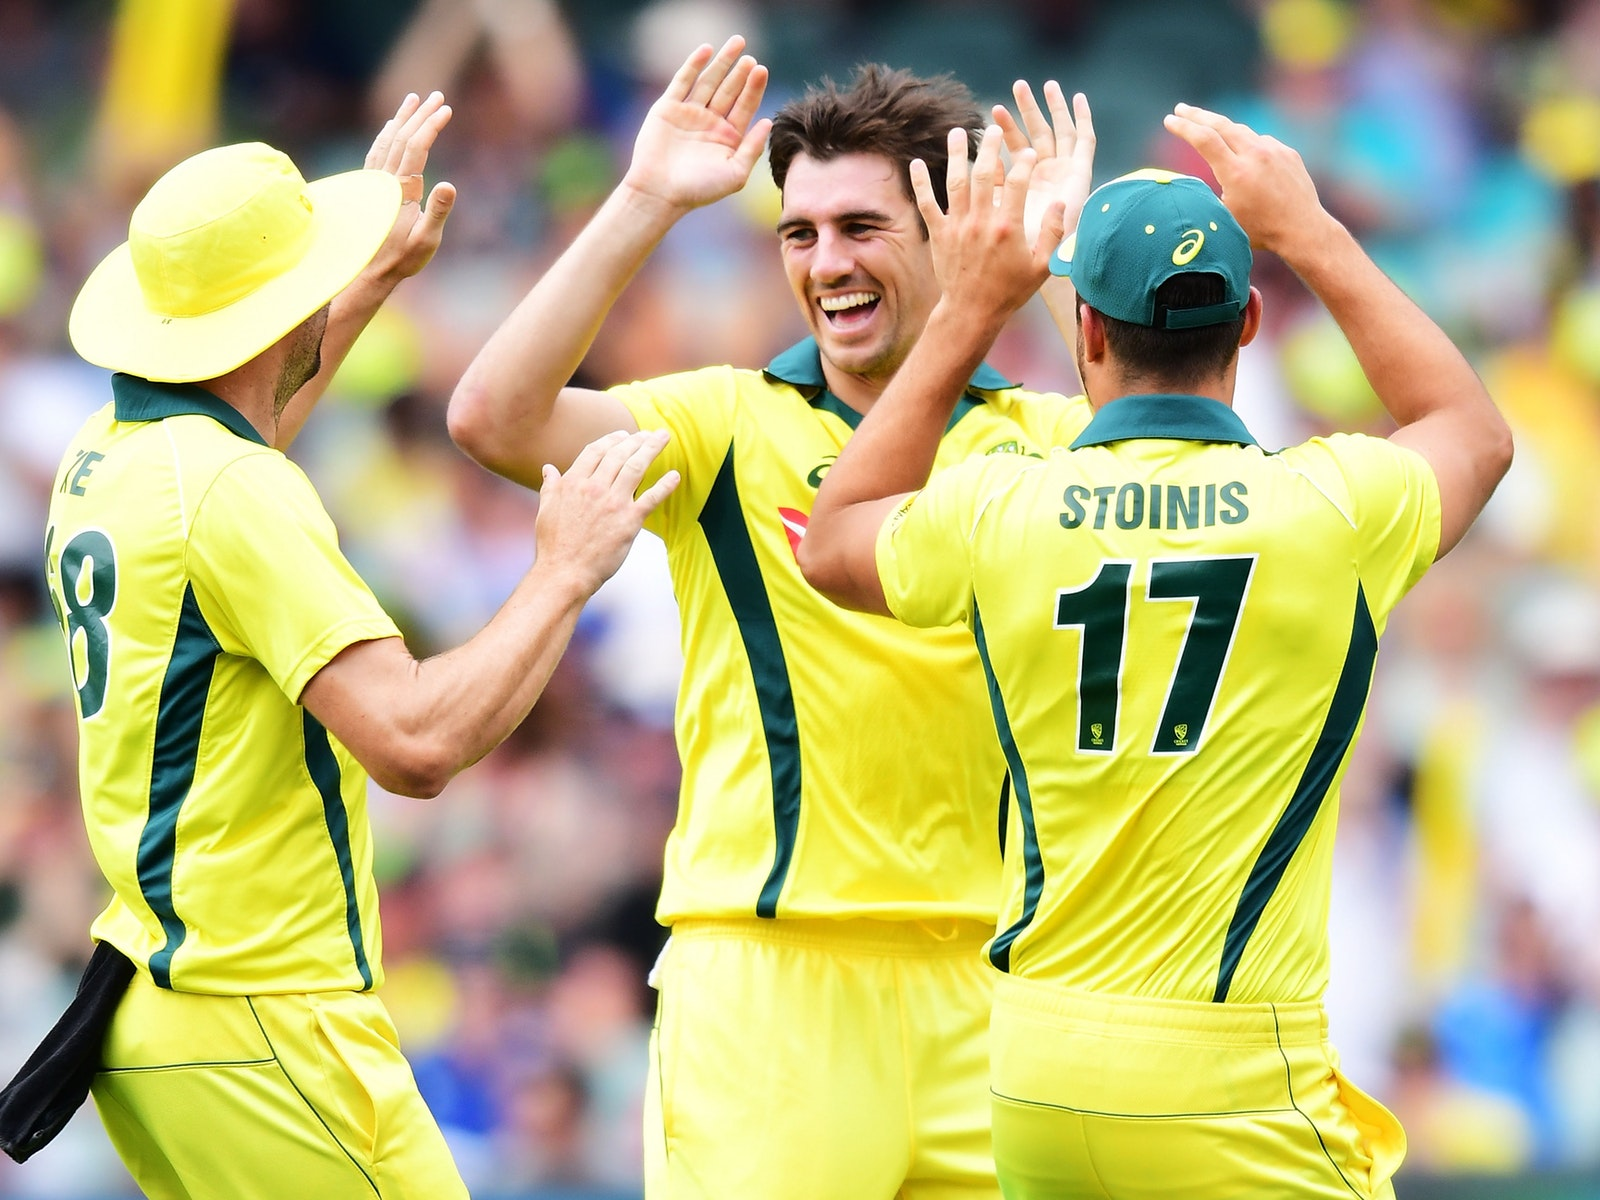 Gillette ODI, photos Getty Images